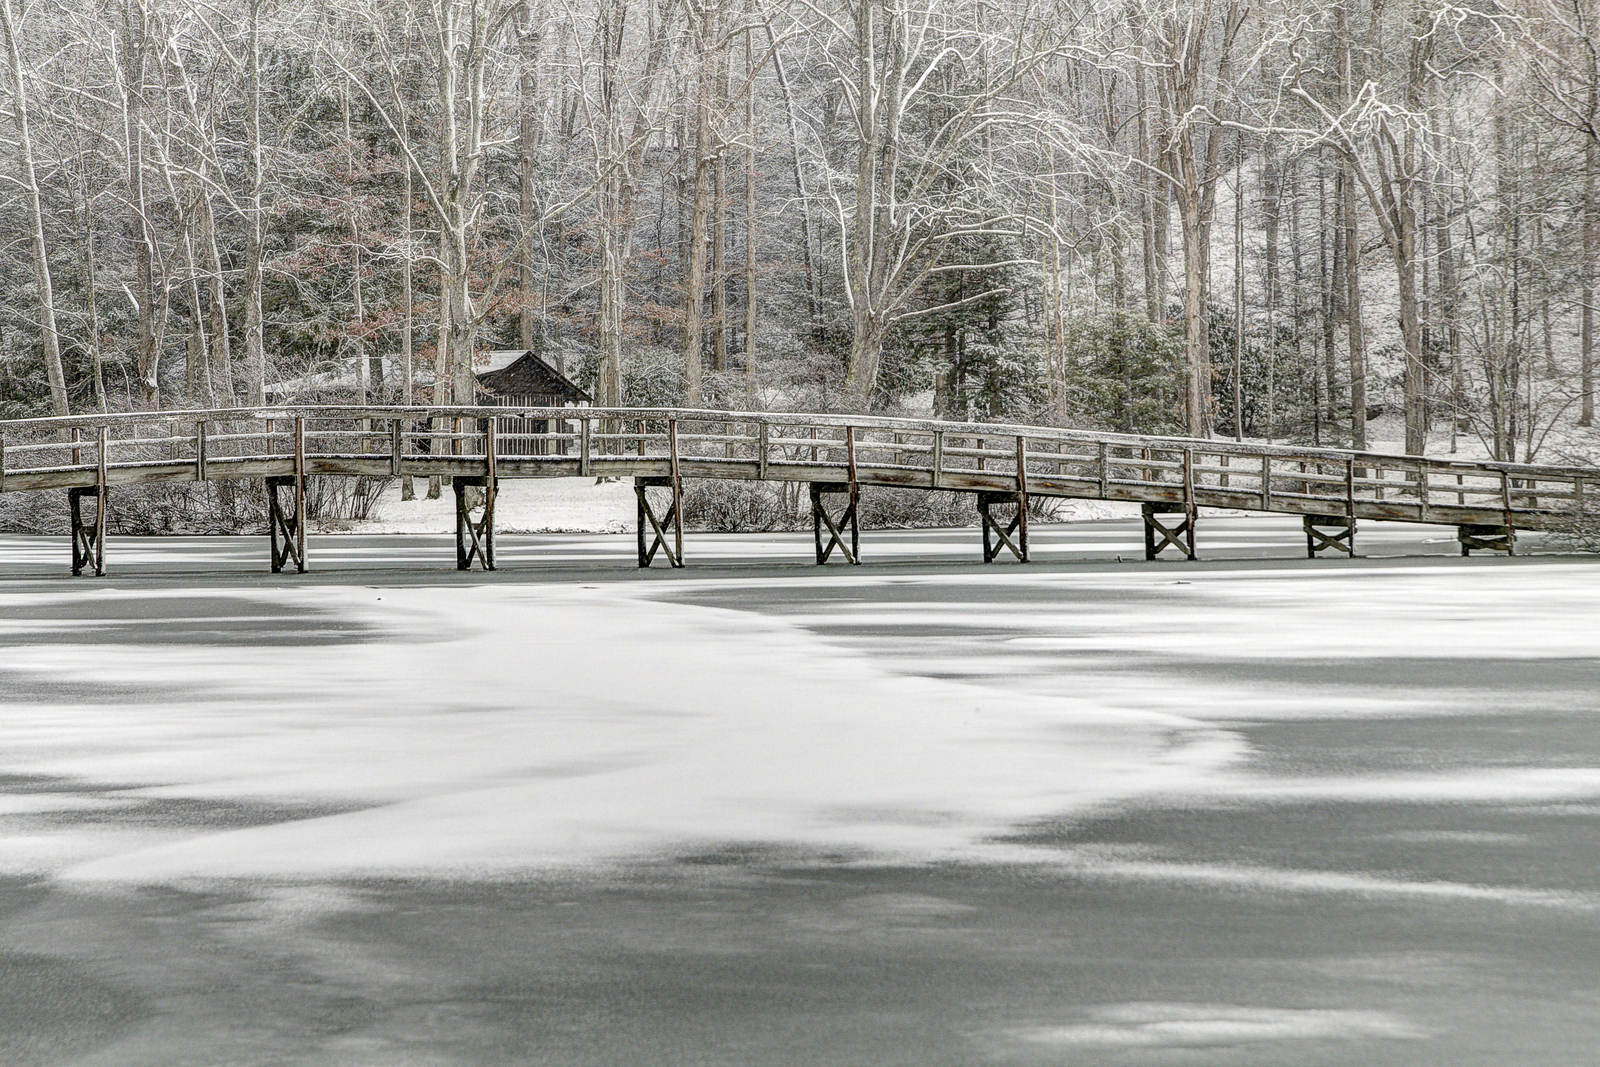 The wooden footbridge crosses a frozen lake covered with snow at Hungry Mother State Park in Marion, VA on Tuesday, January 21, 2014. Copyright 2014 Jason Barnette